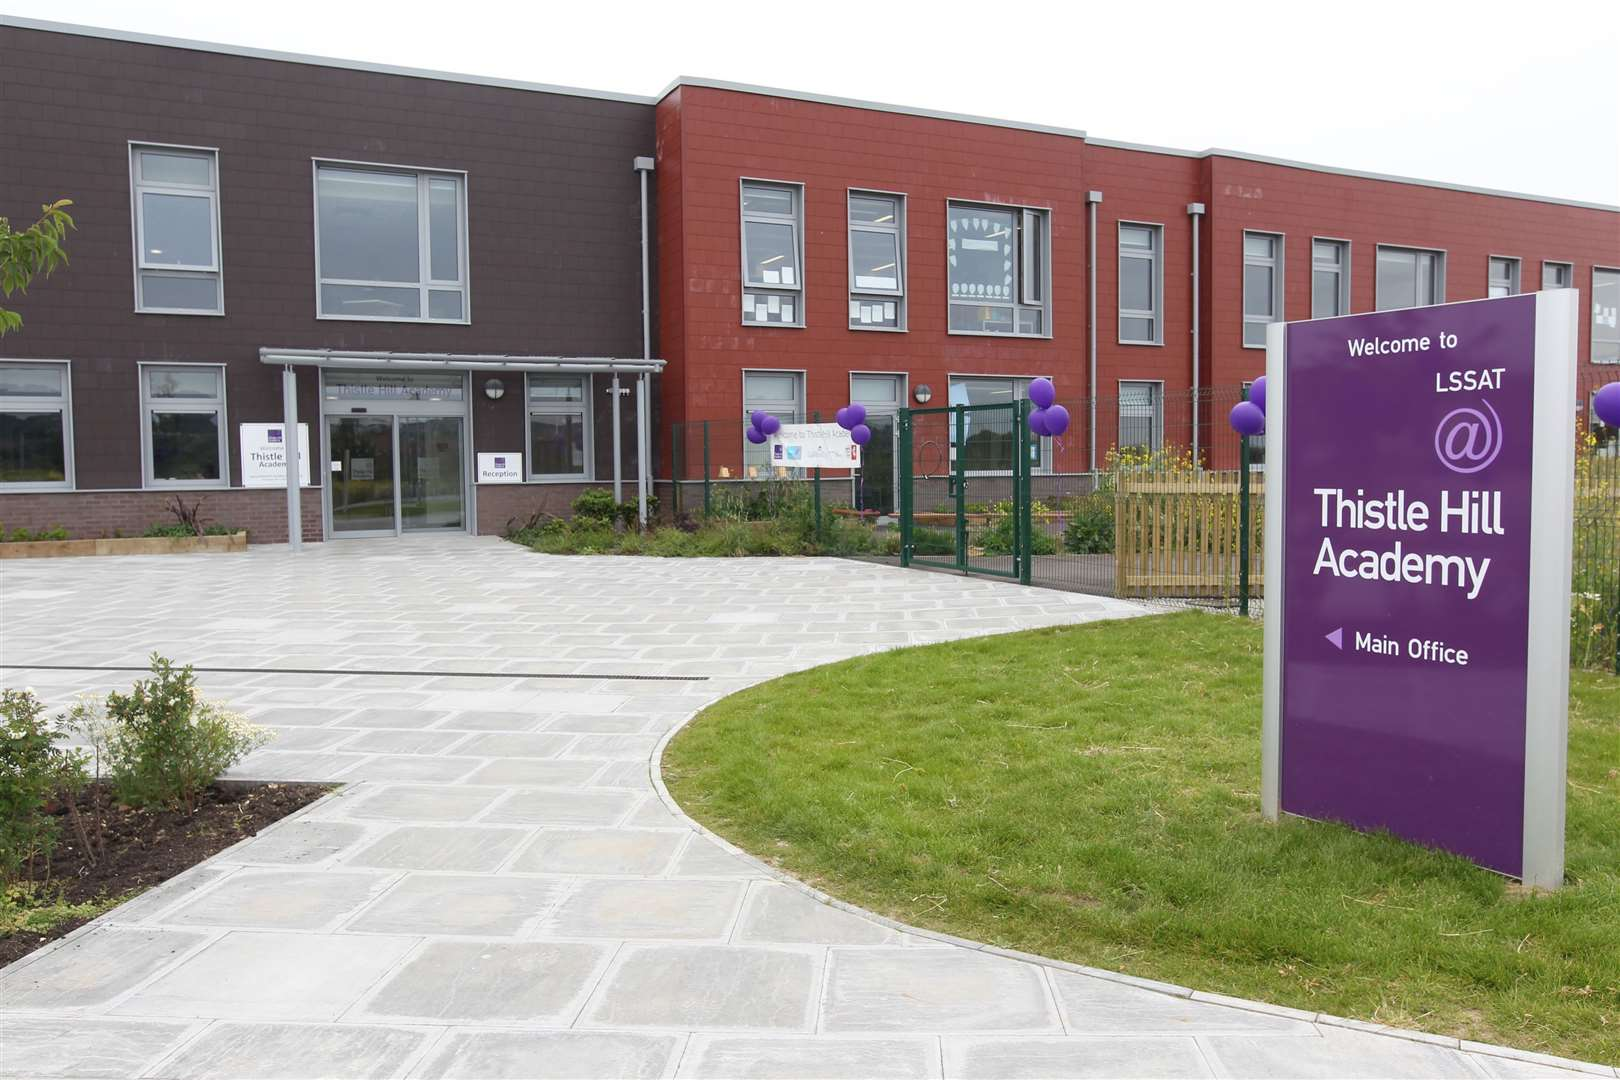 Thistle Hill Academy in Minster, Sheppey